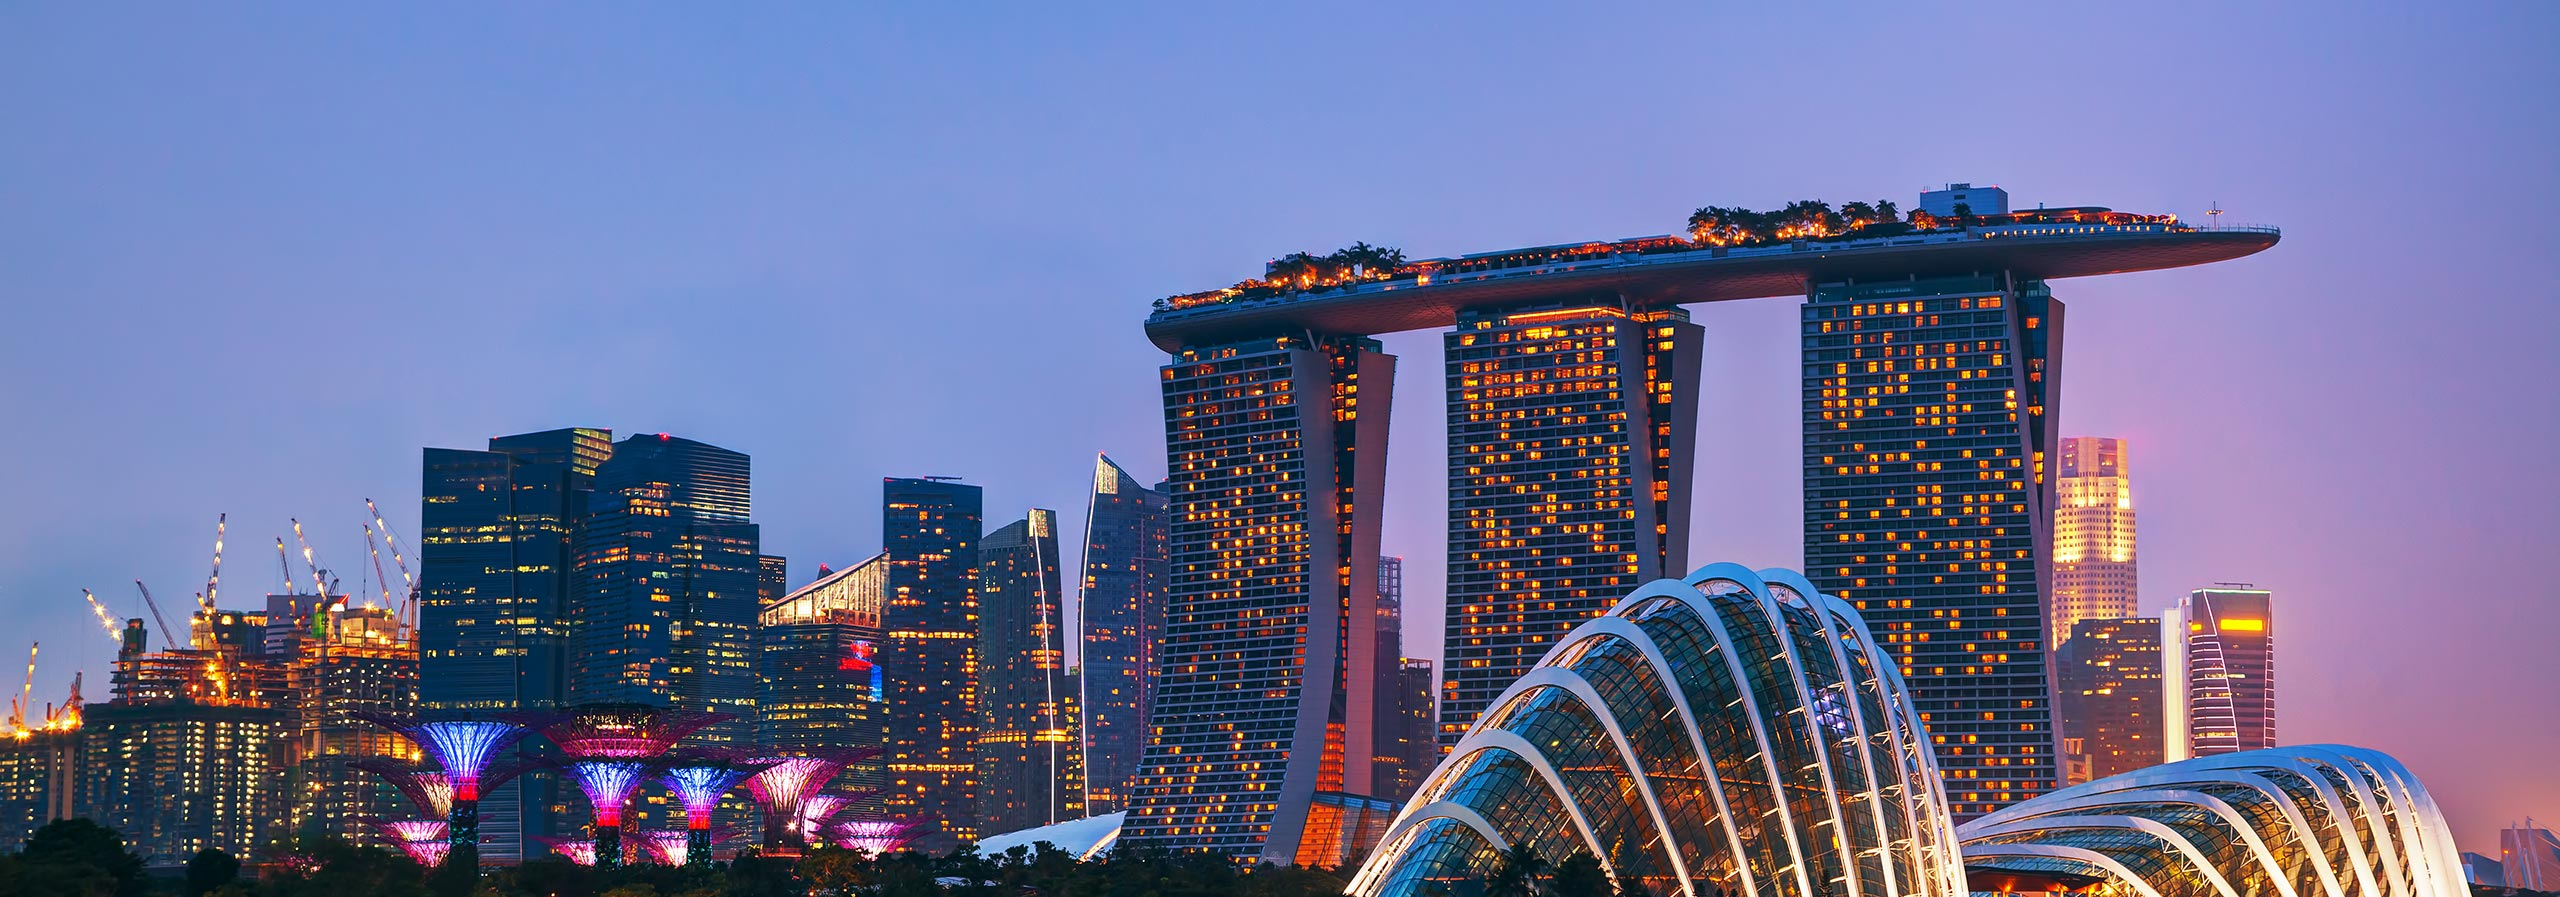 car hire rentals singapore city at night